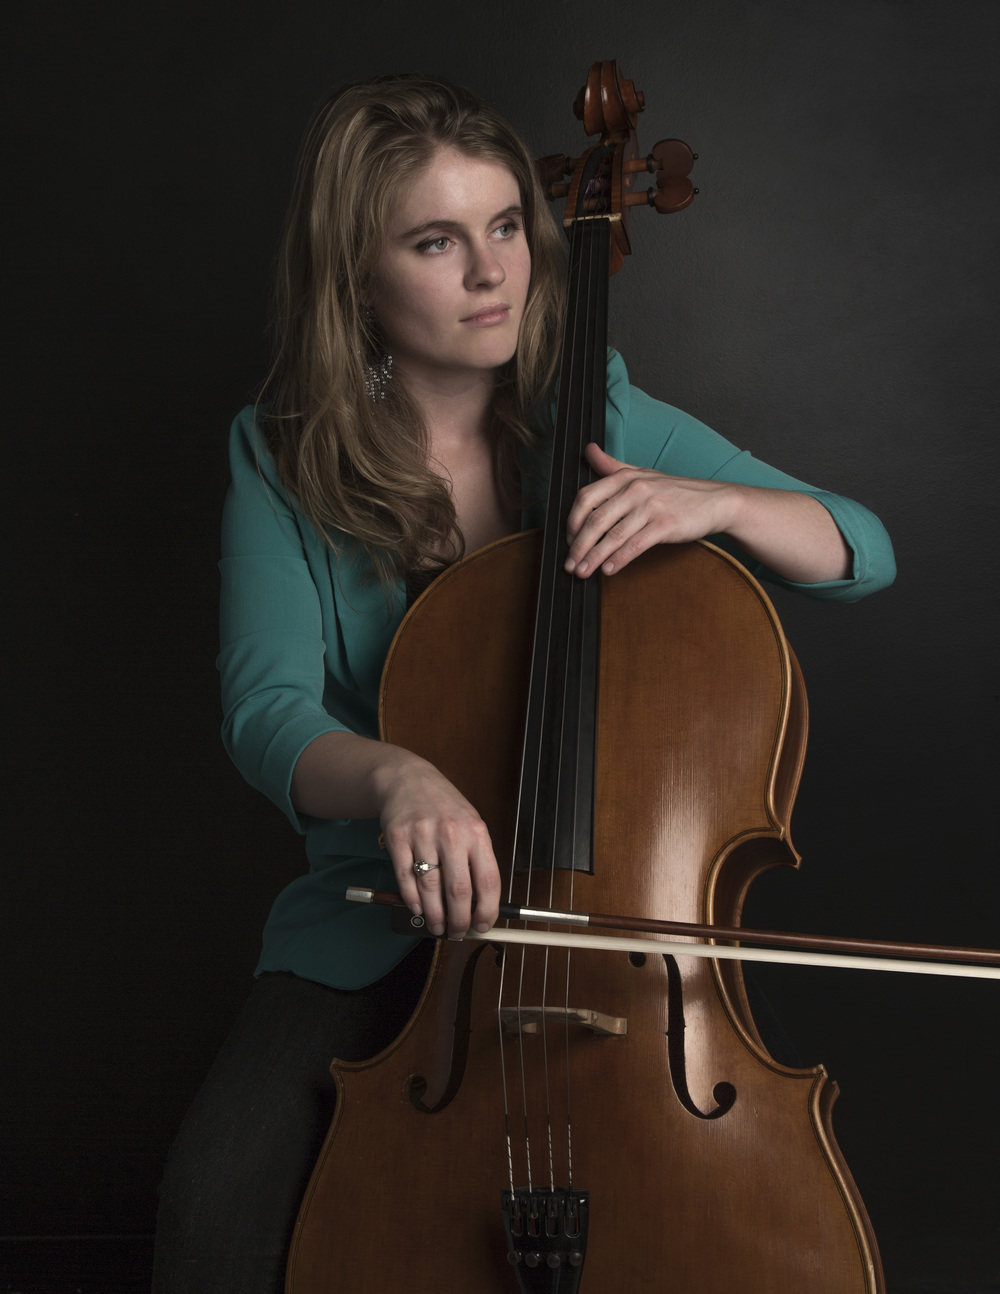 Nadine Sherman   C  ello    Nadine completed her Bachelors of Music degree in cello performance at the Eastman School of Music in May 2014 and currently works as a freelance cellist and professional photographer in Rochester.